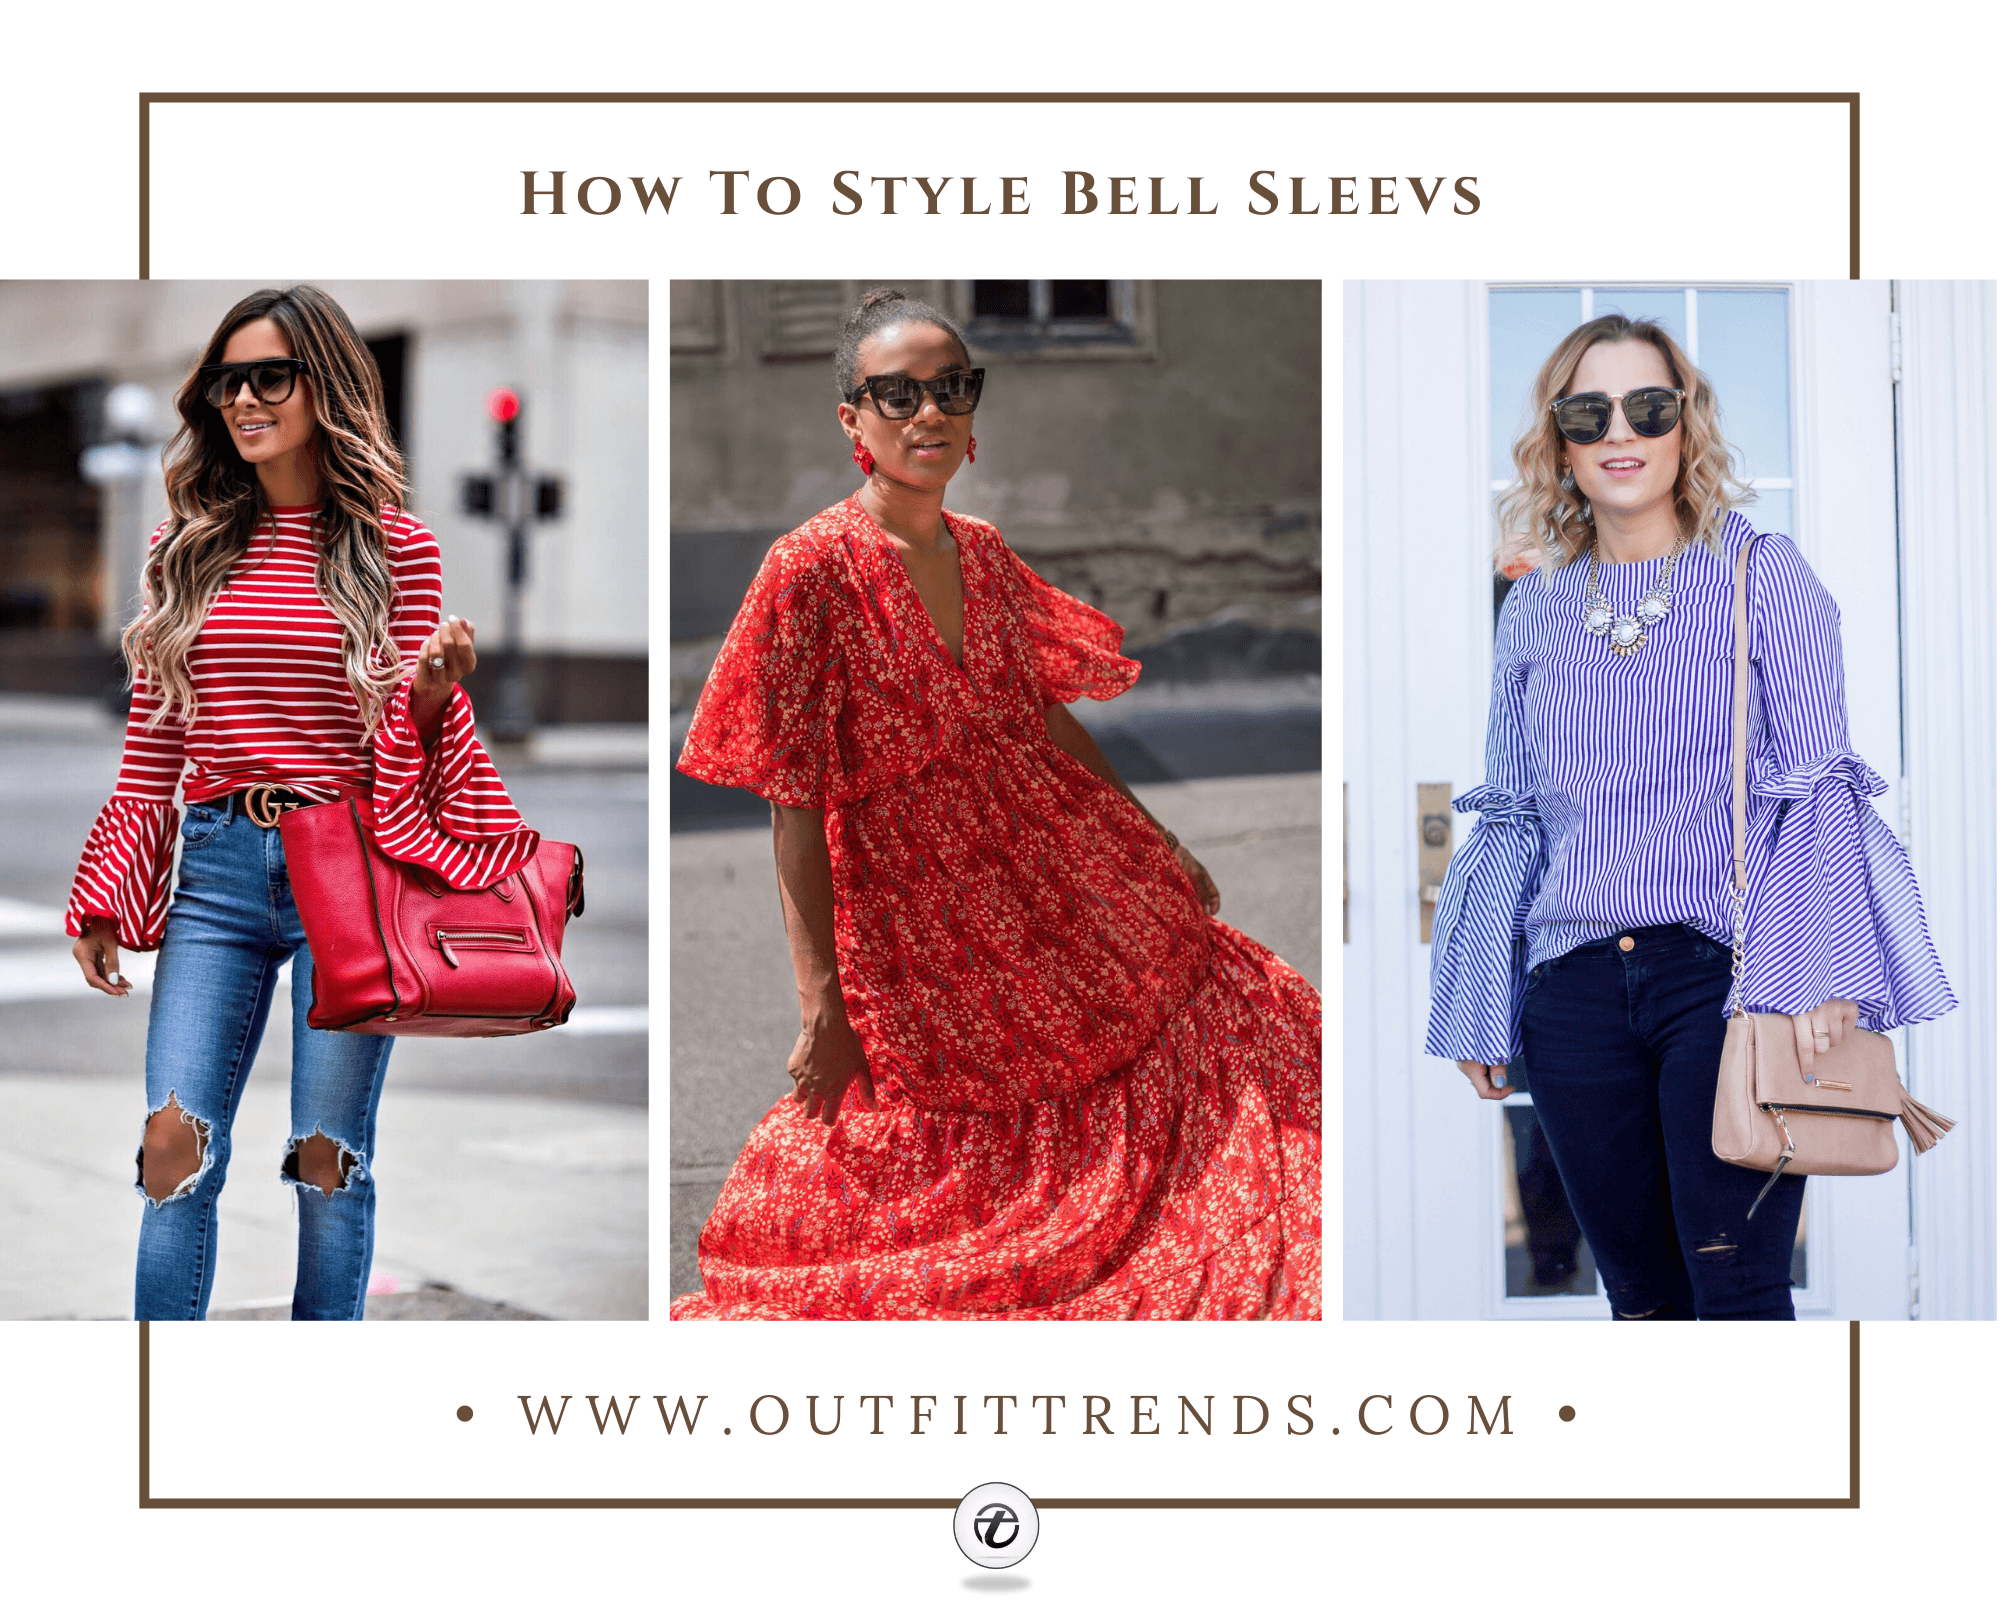 How to Wear Bell Sleeves – 56 Outfit Ideas with Bell Sleeves